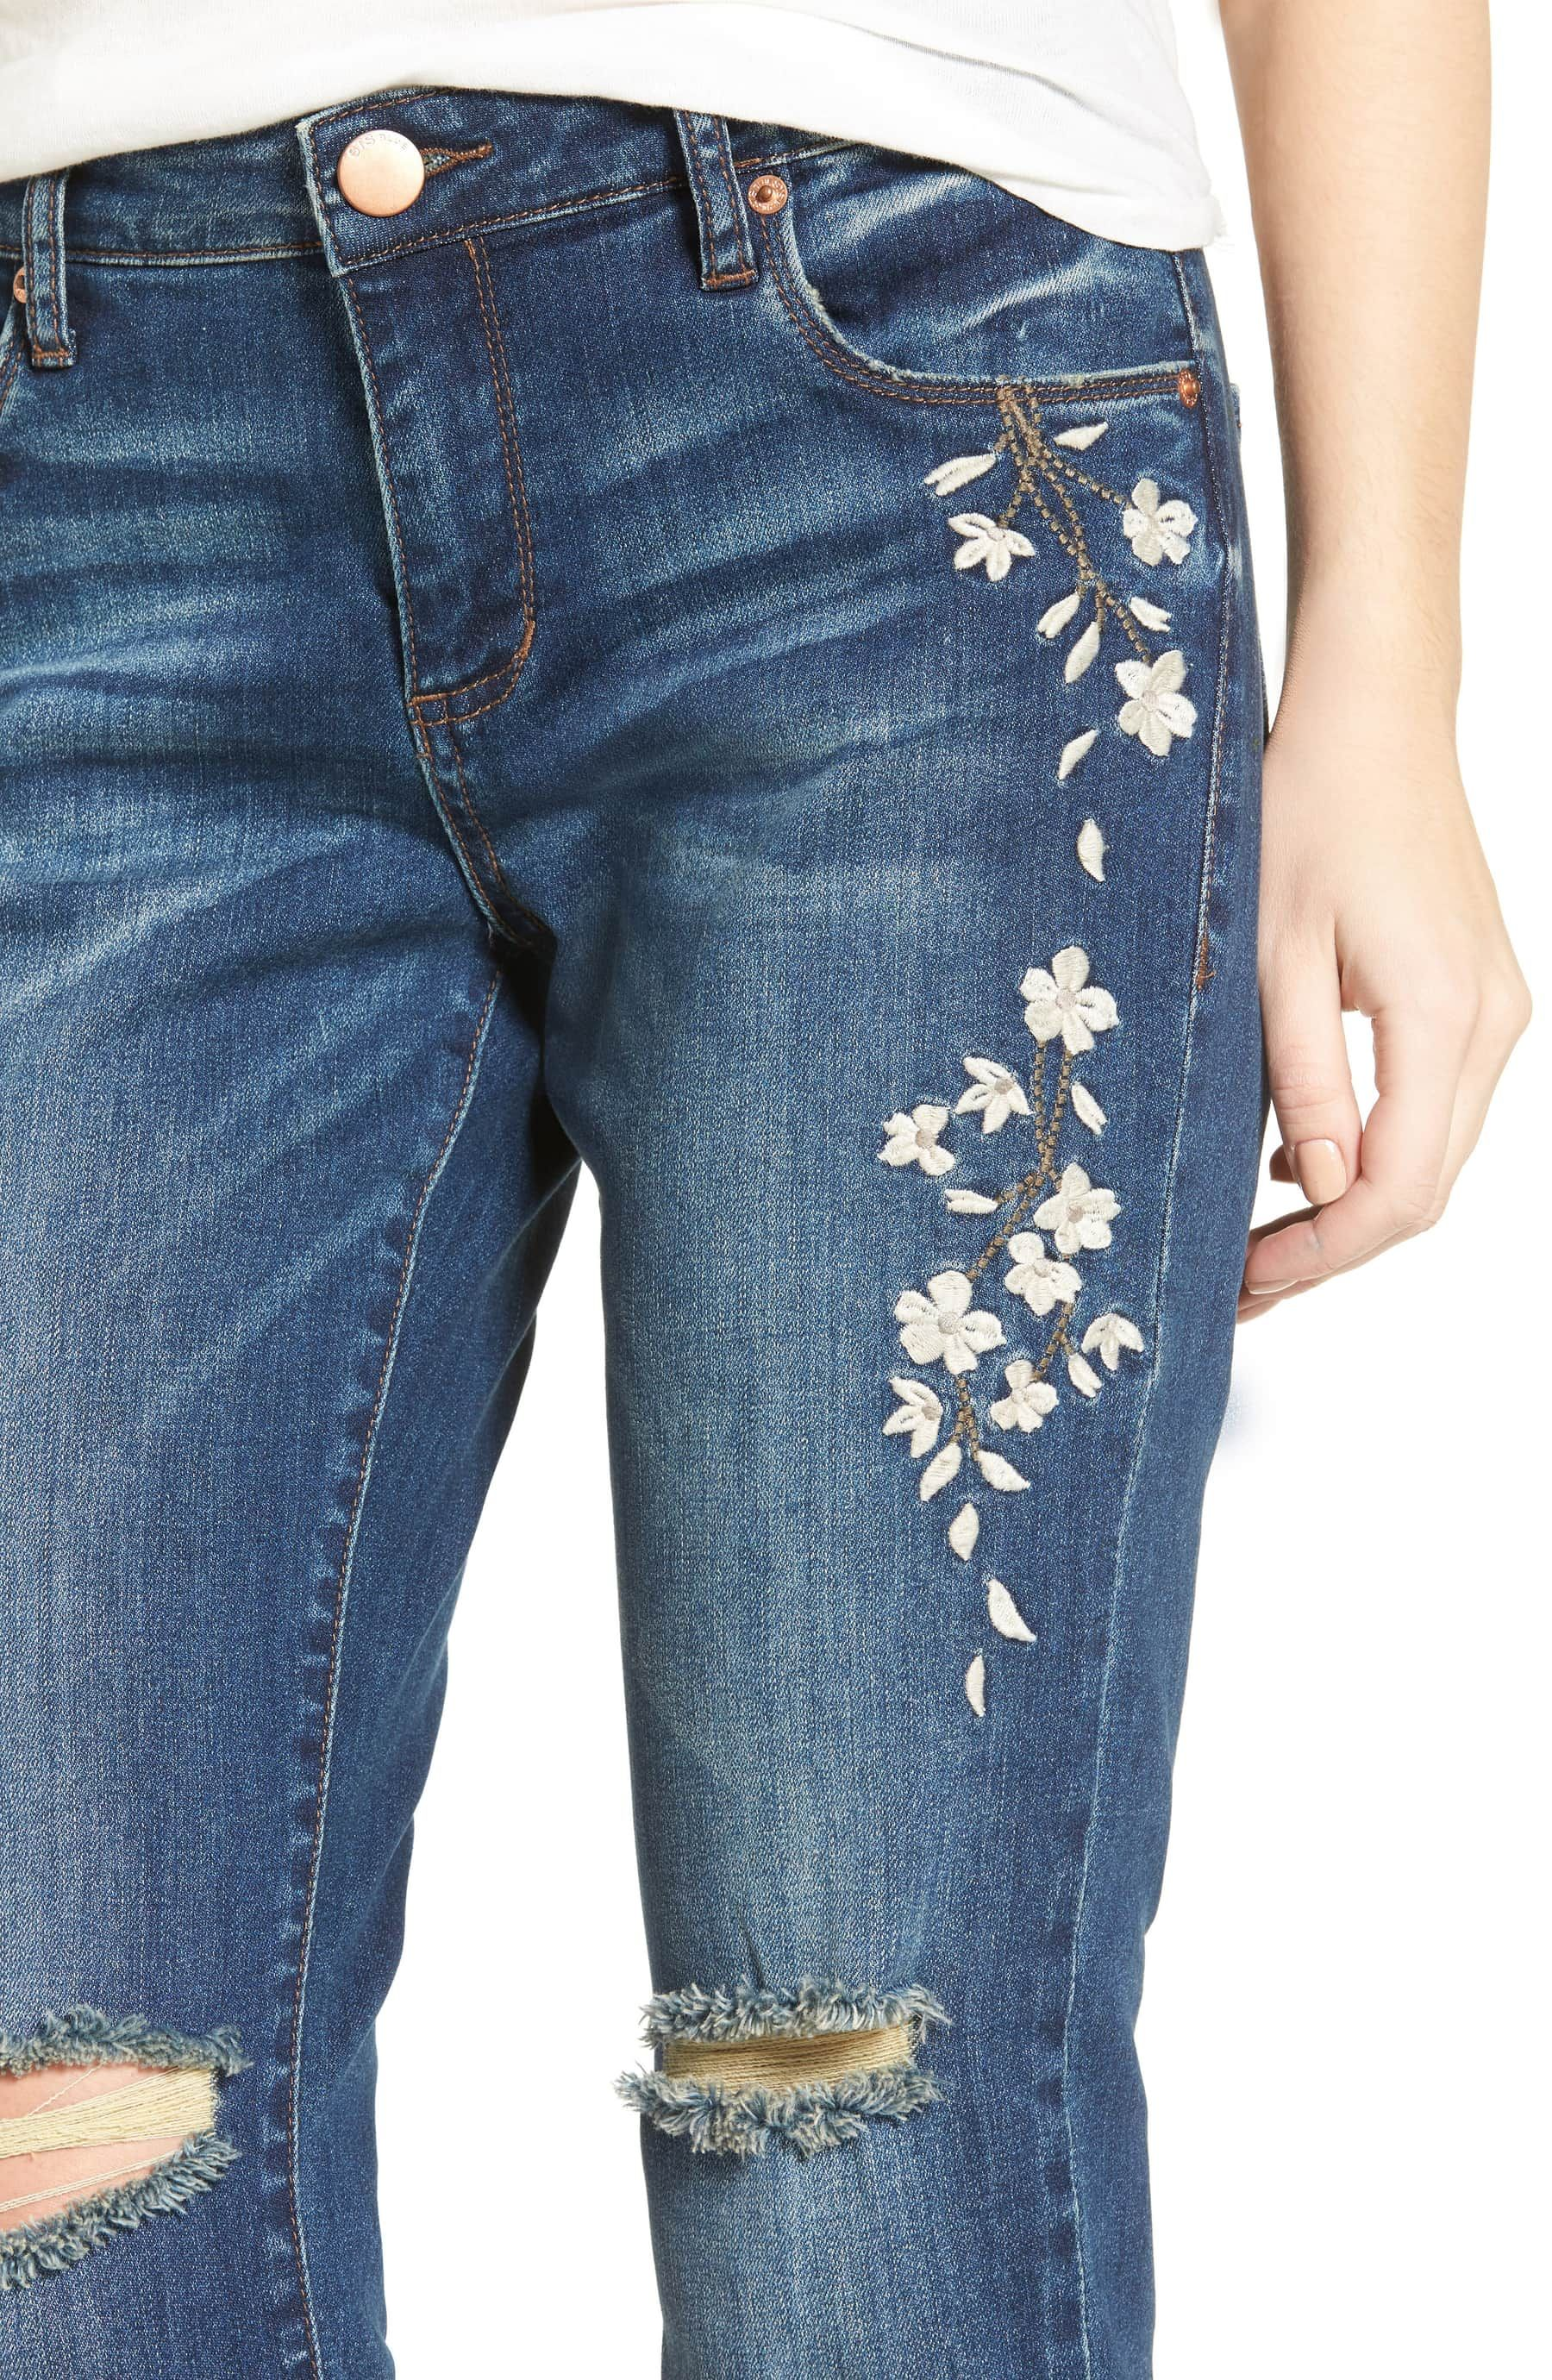 Womens Slim Skinny Embroidered design Jeans Blue faded Sizes UK 6-14